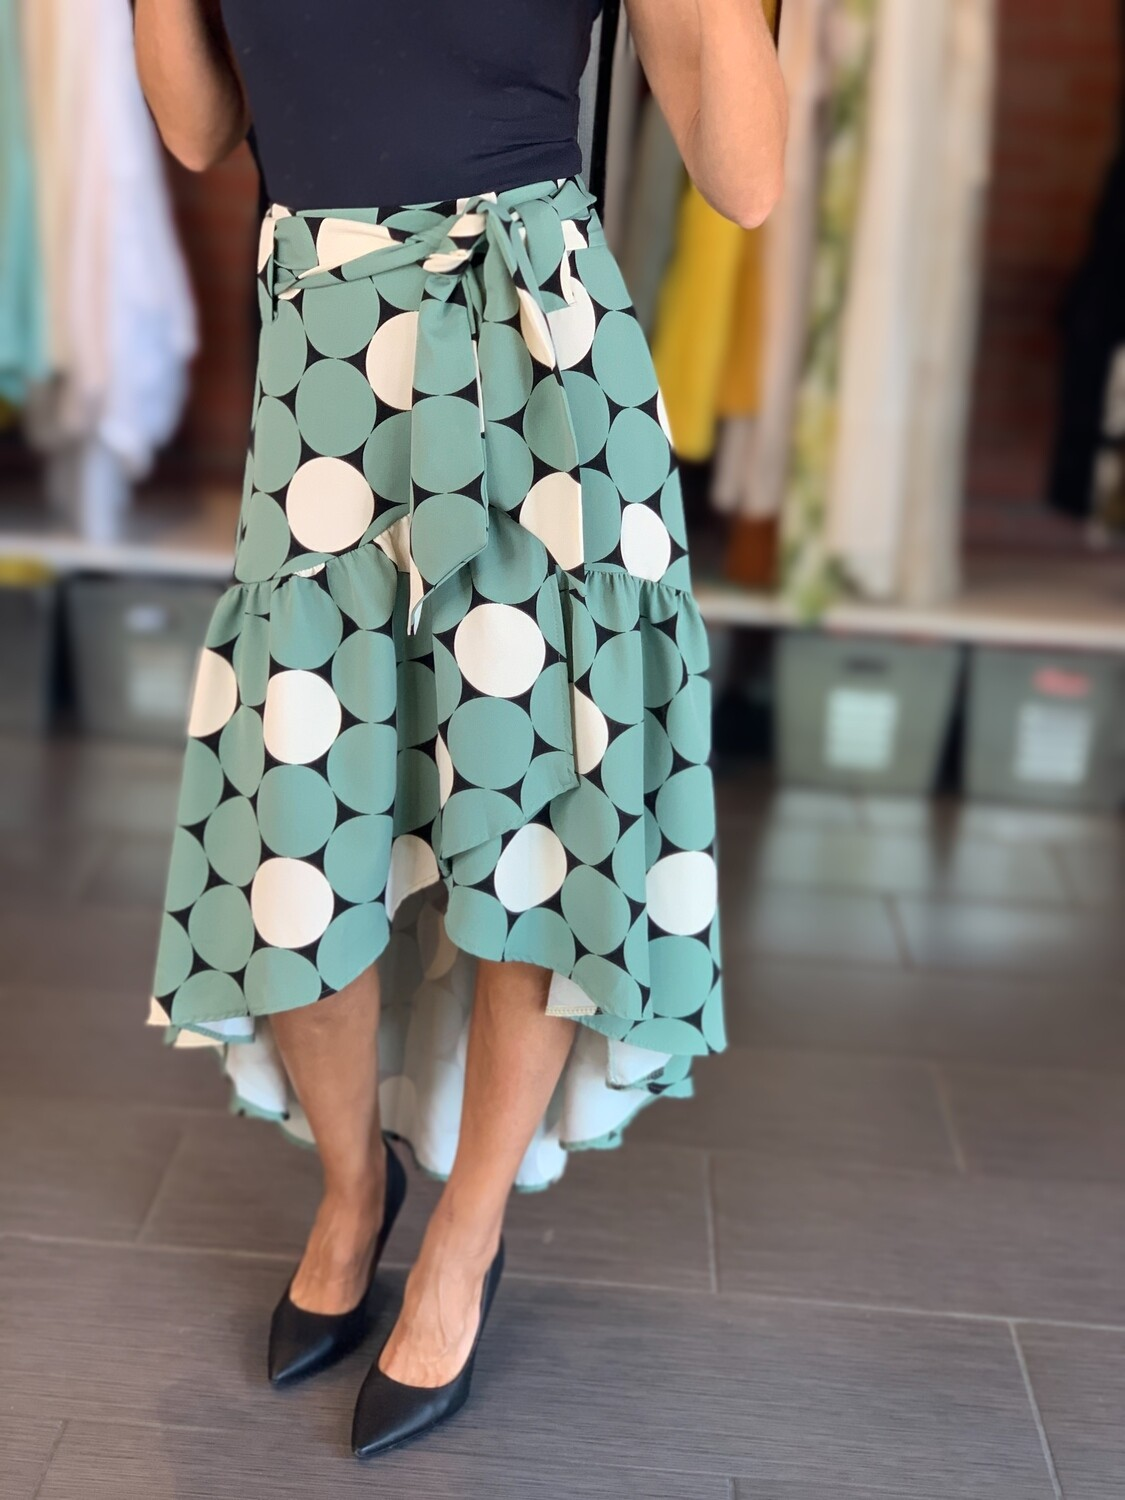 Polka Dot Skirt - One Size (2 Colors)